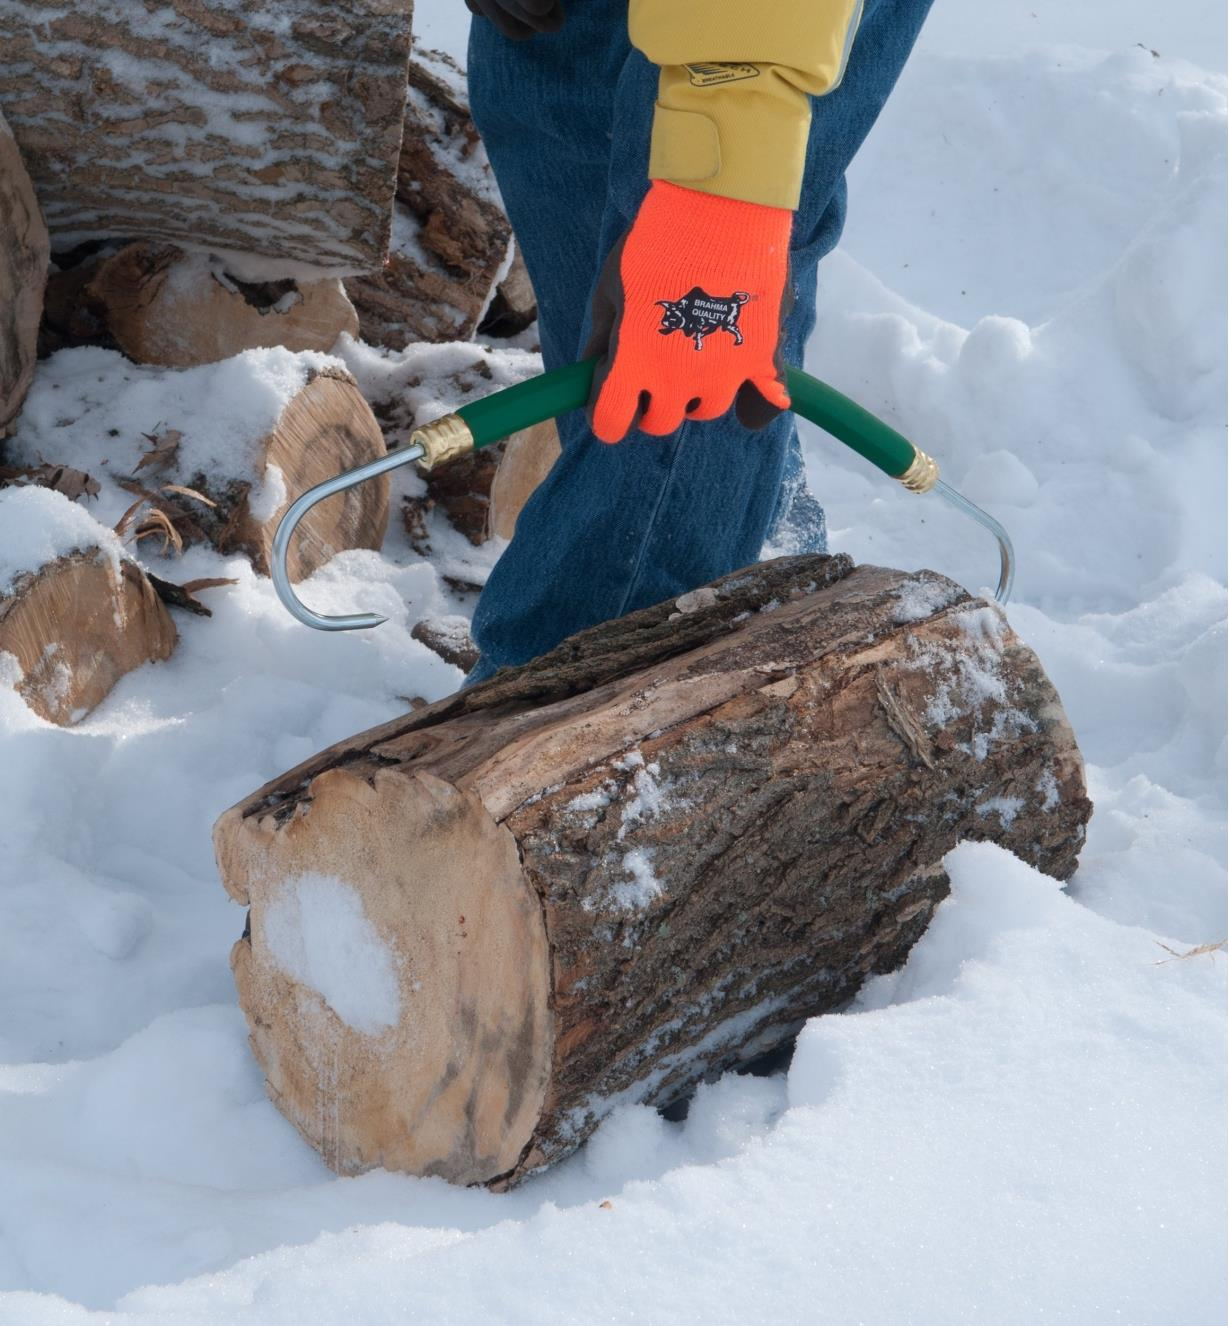 Firewood Gripper being hooked into the ends of a log for carrying